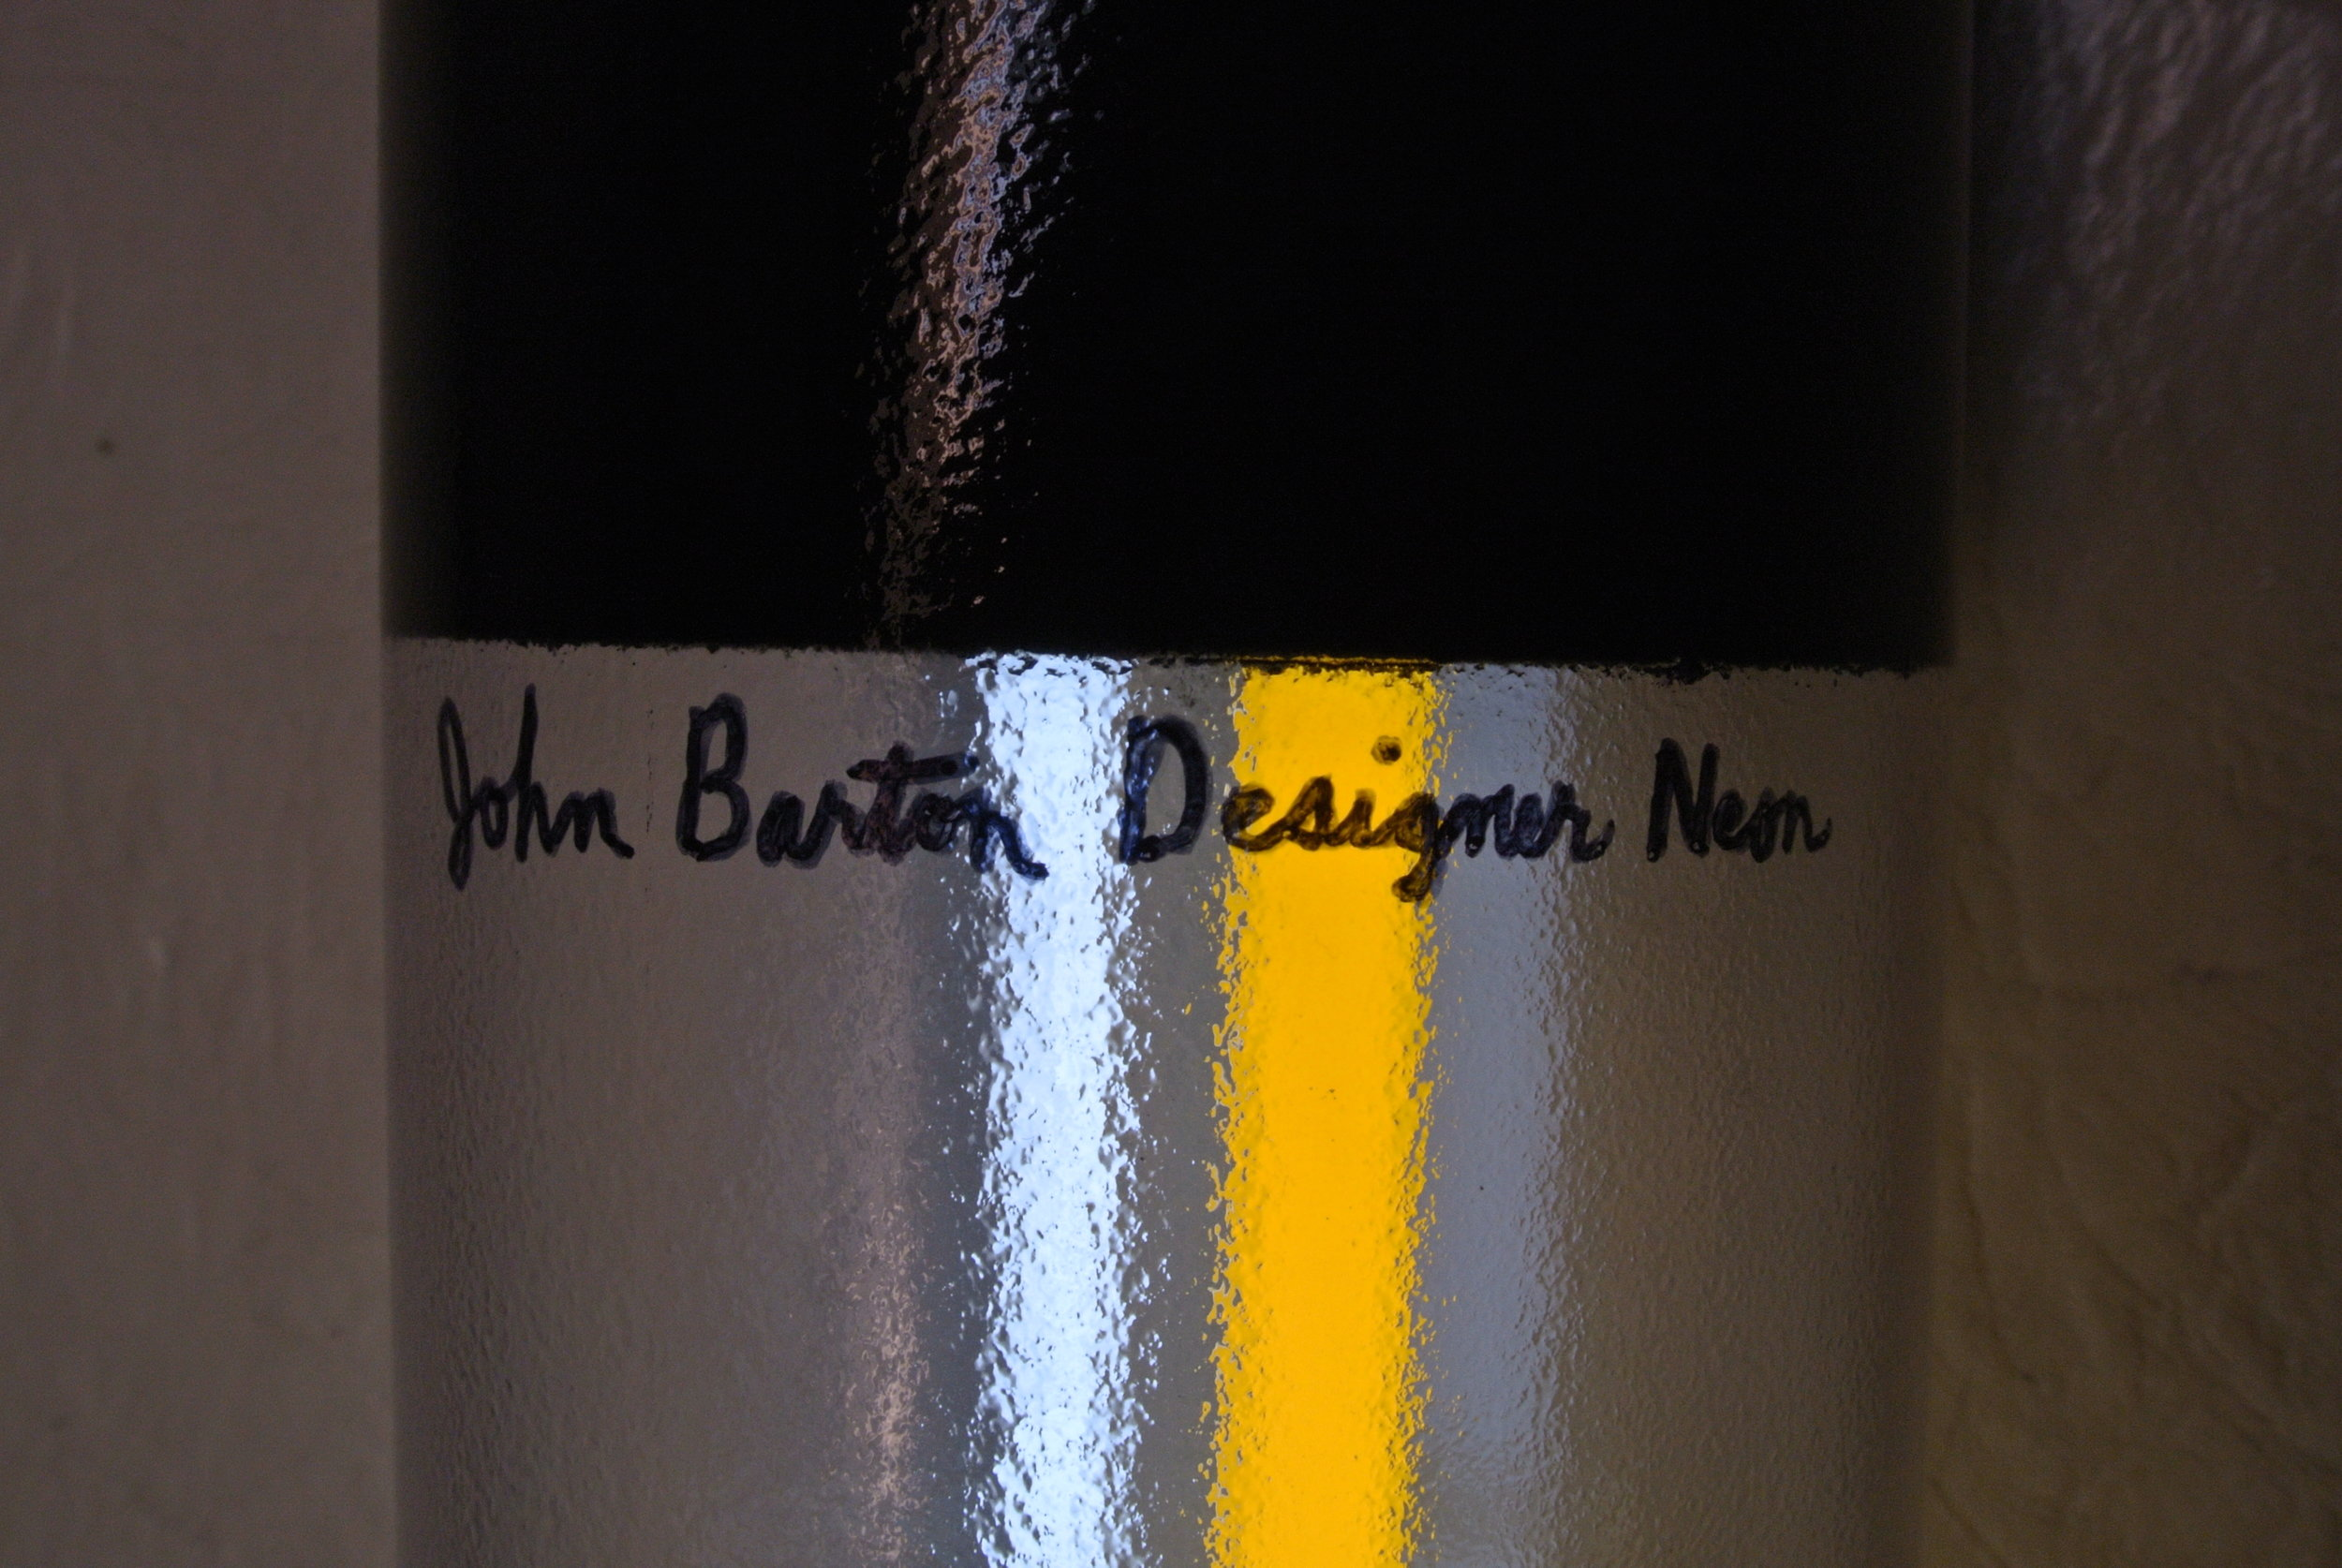 Custom Designer Neon Light Cylinders by John Barton - Famous USA Neon Glass Artist - BartonNeonMagic.com